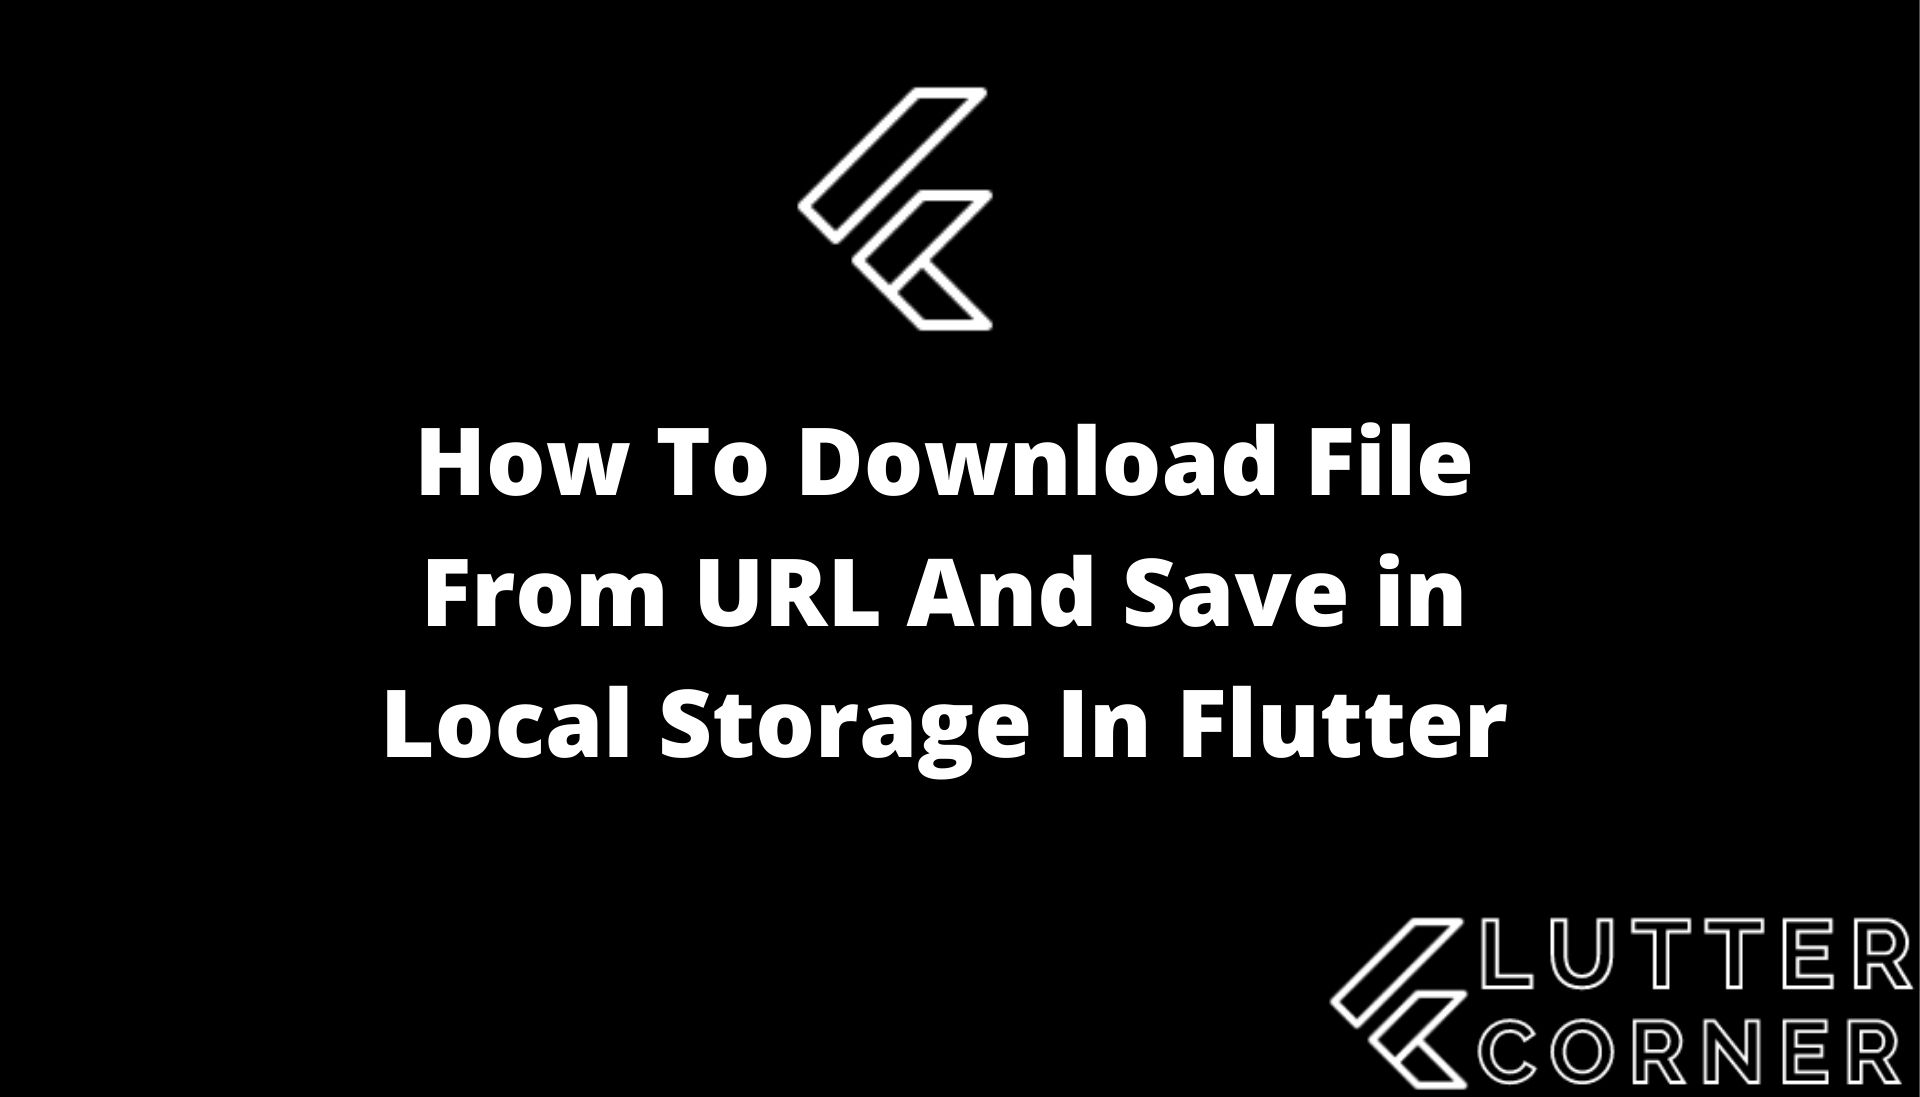 How To Download File From URL And Save in Local Storage In Flutter, How to download pdf from URL and save to phones local storage in flutter ?, How to Download file in flutter ?, How to download mp3 file from URL and save to phone local storage in flutter ?, download file from url and save to storage